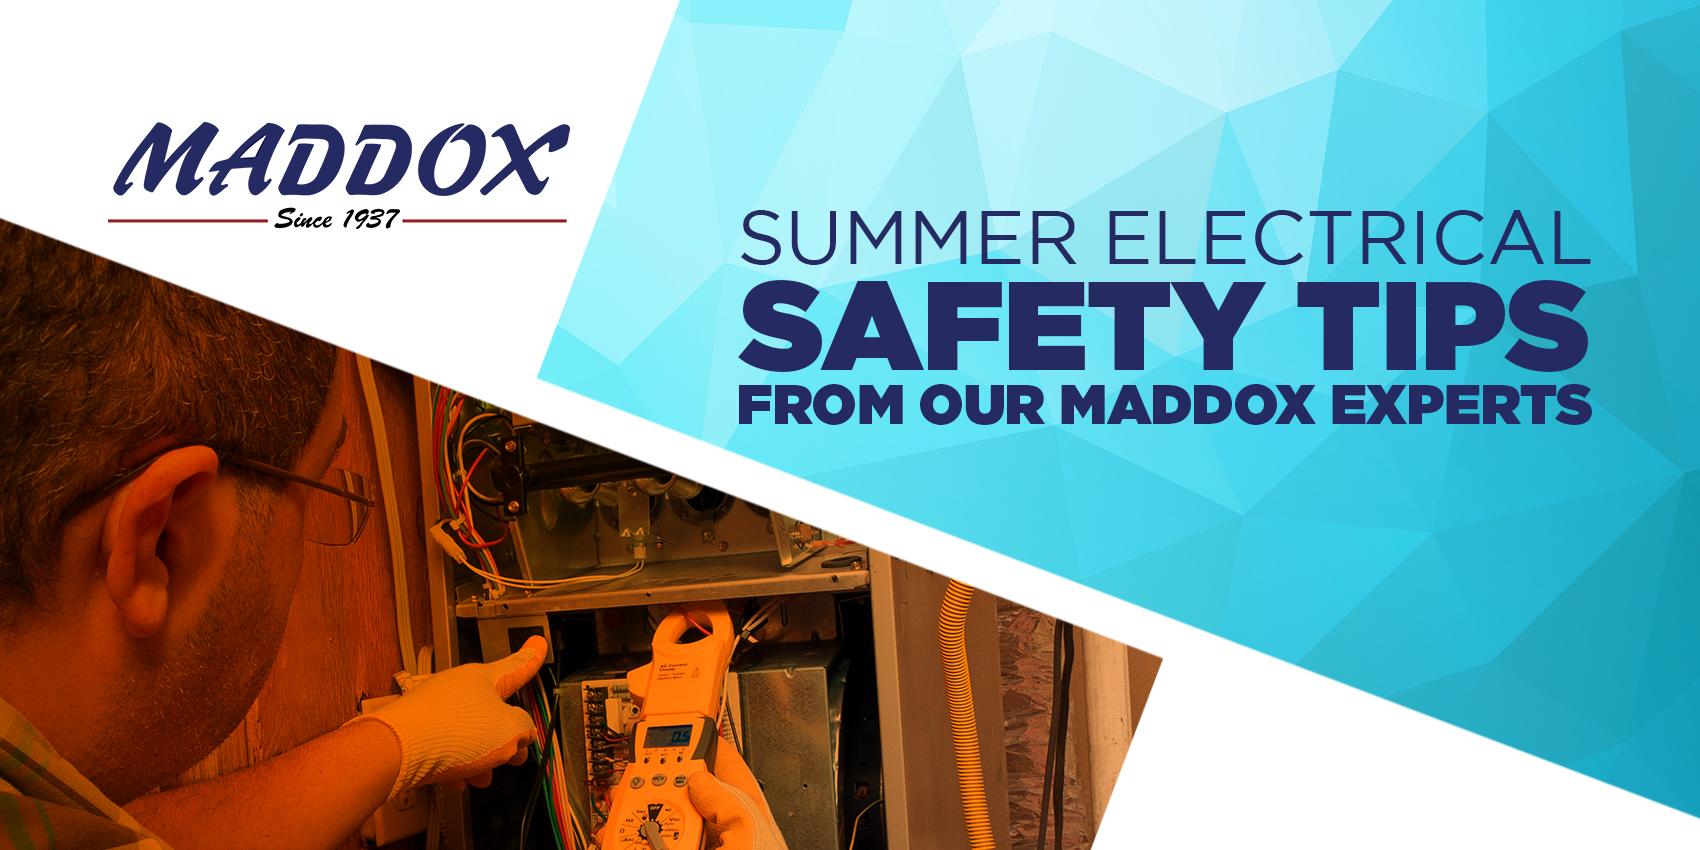 Summer Electrical Safety Tips From Our Maddox Experts